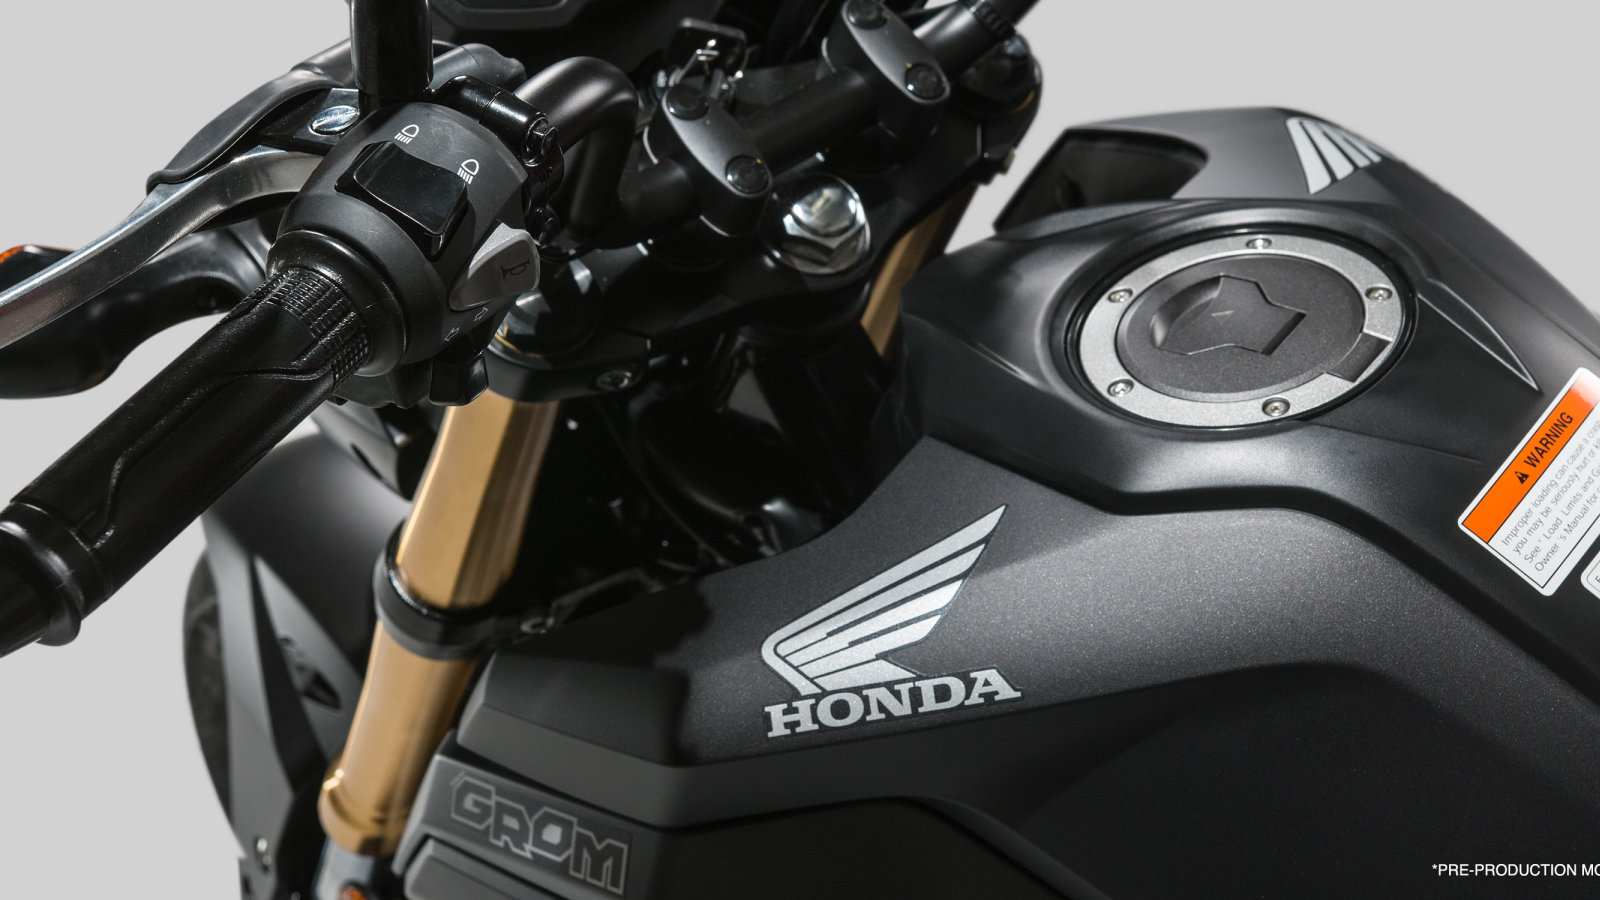 Honda Motorcycle Scooter 2017 2017 Honda Grom Picture 679123 Motorcycle Review Top